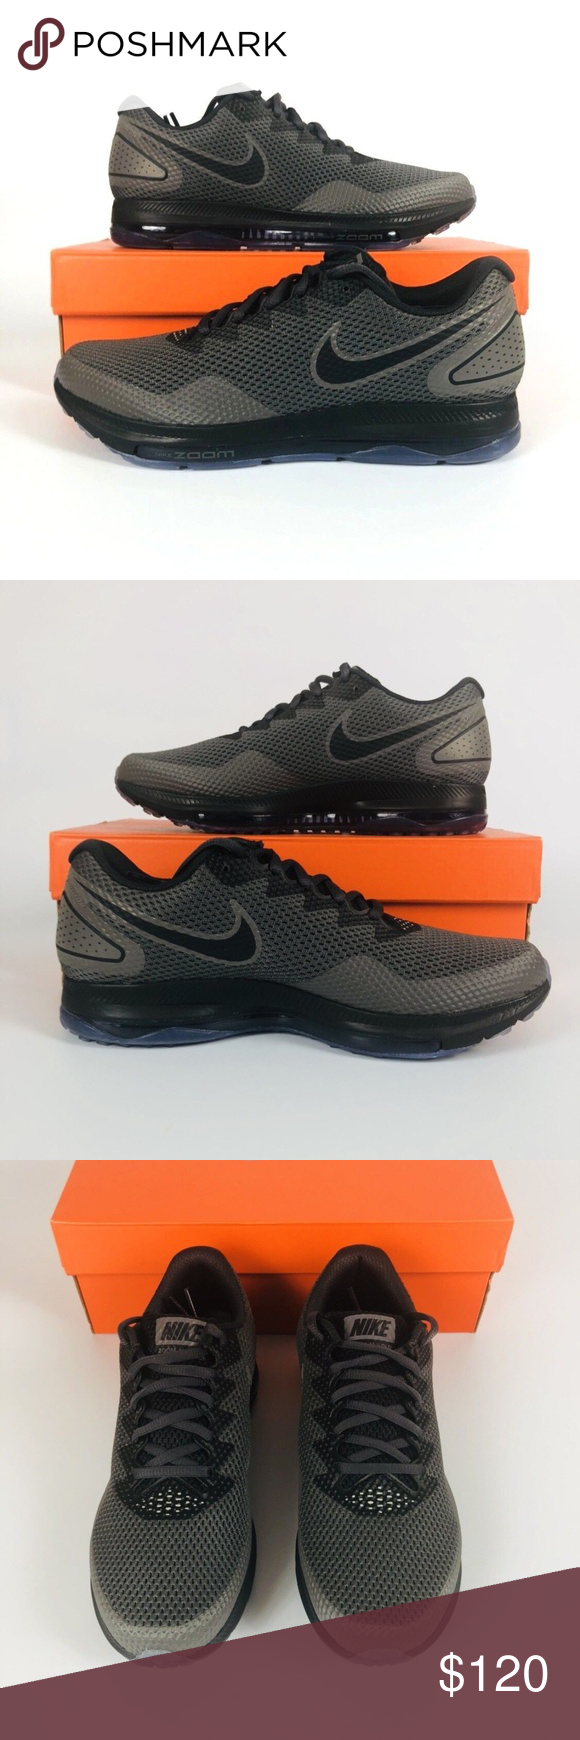 287e3cc1257 Nike Zoom All Out Low 2 Nike Wmns Zoom All Out Low 2 Air Max Womens Running  Shoes AJ0036-002 New With Box Shipped Double Boxed Nike Shoes Sneakers